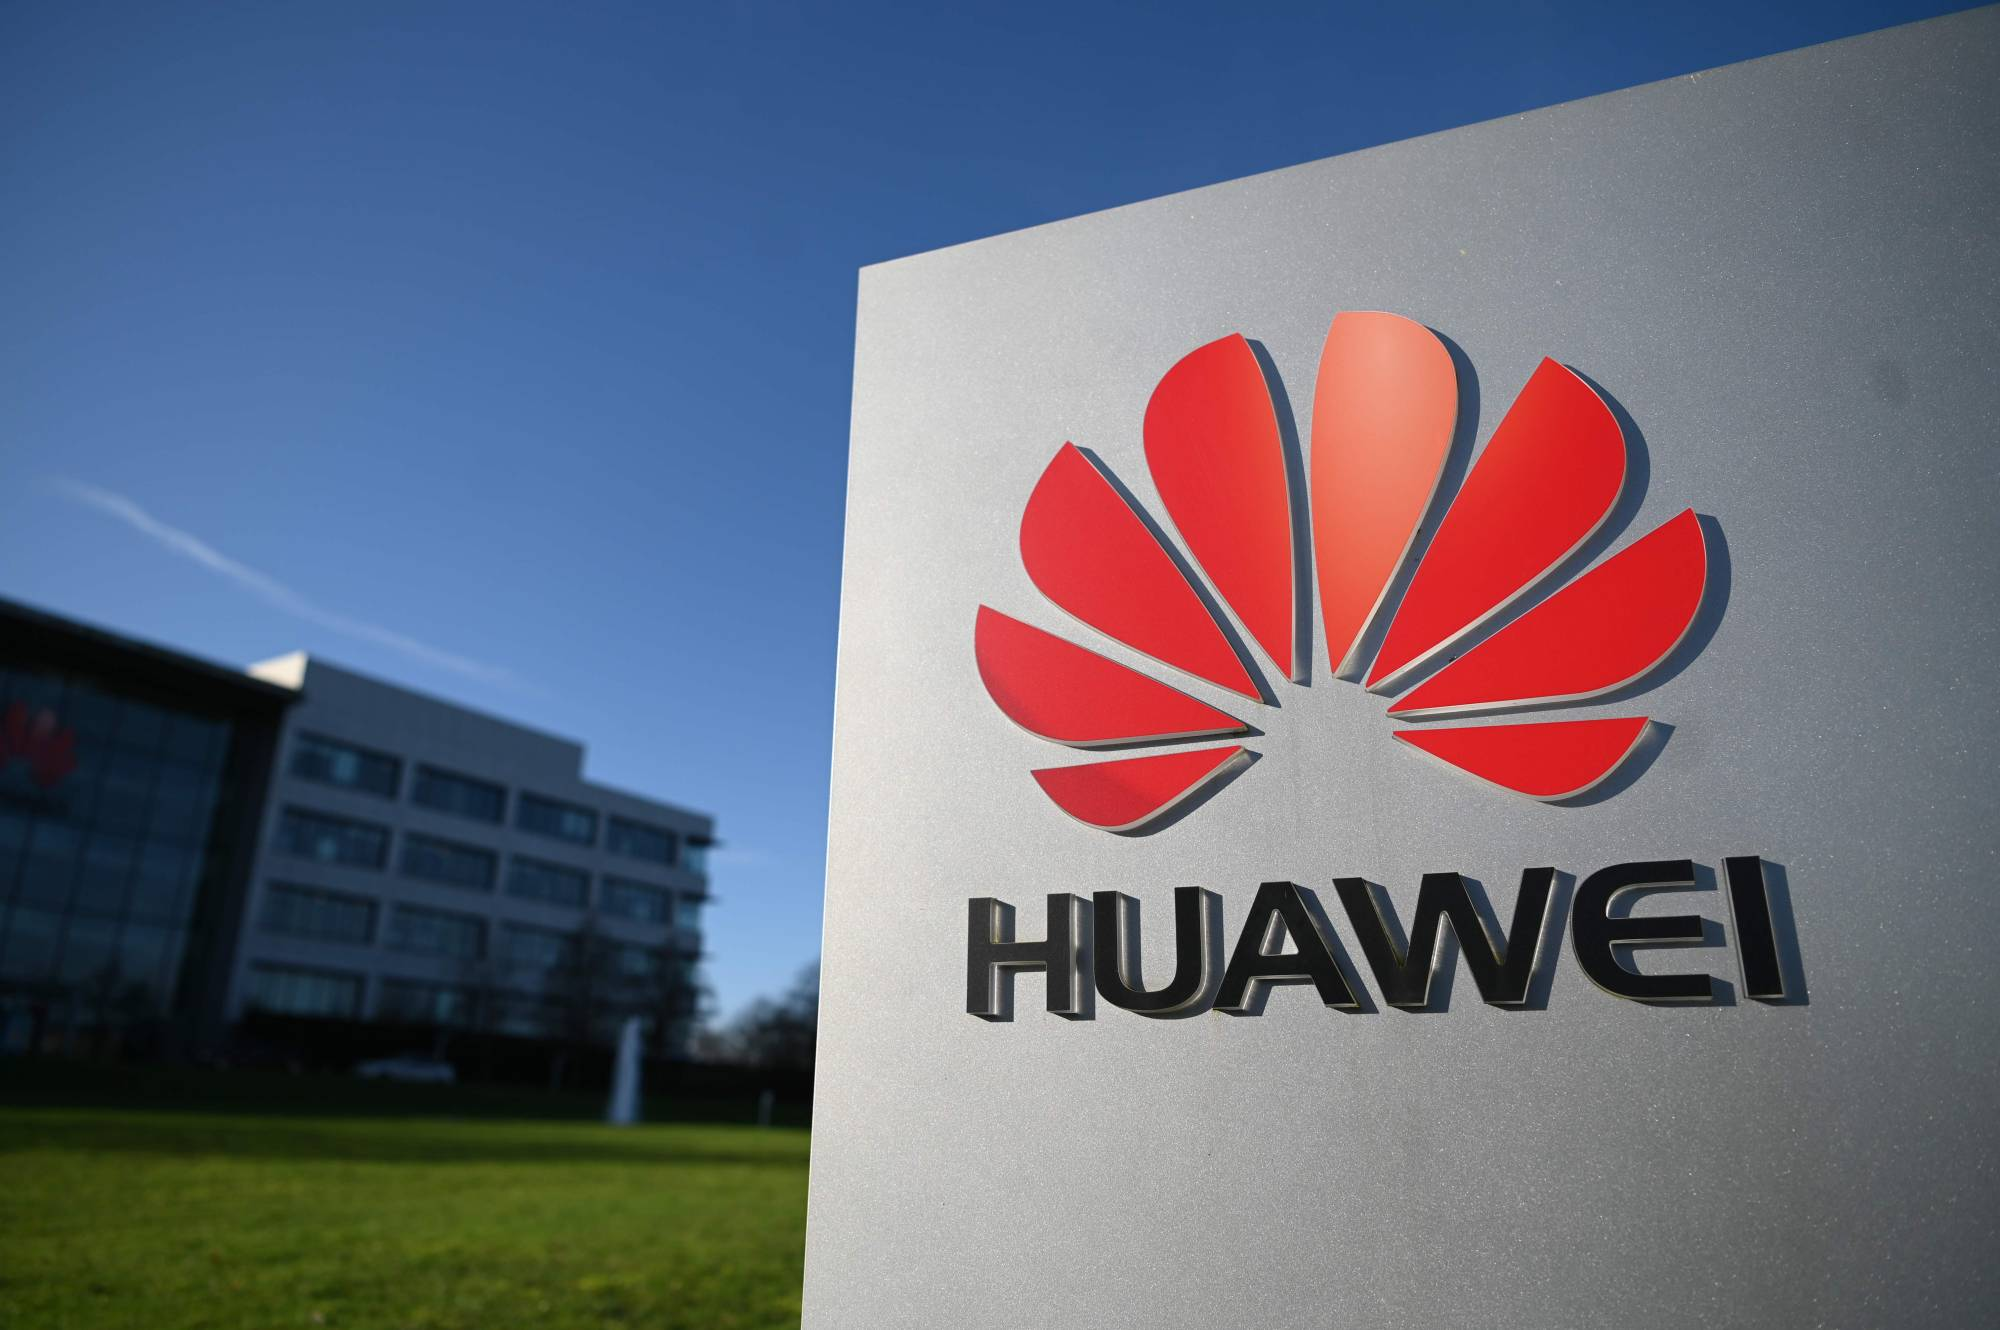 Under a ban that may be implemented by the U.K. that would prevent Huawei Technologies Co. from its next generation mobile networks, British phone companies will not be able to add any new Huawei components to their 5G networks by the end of the year.    AFP-JIJ